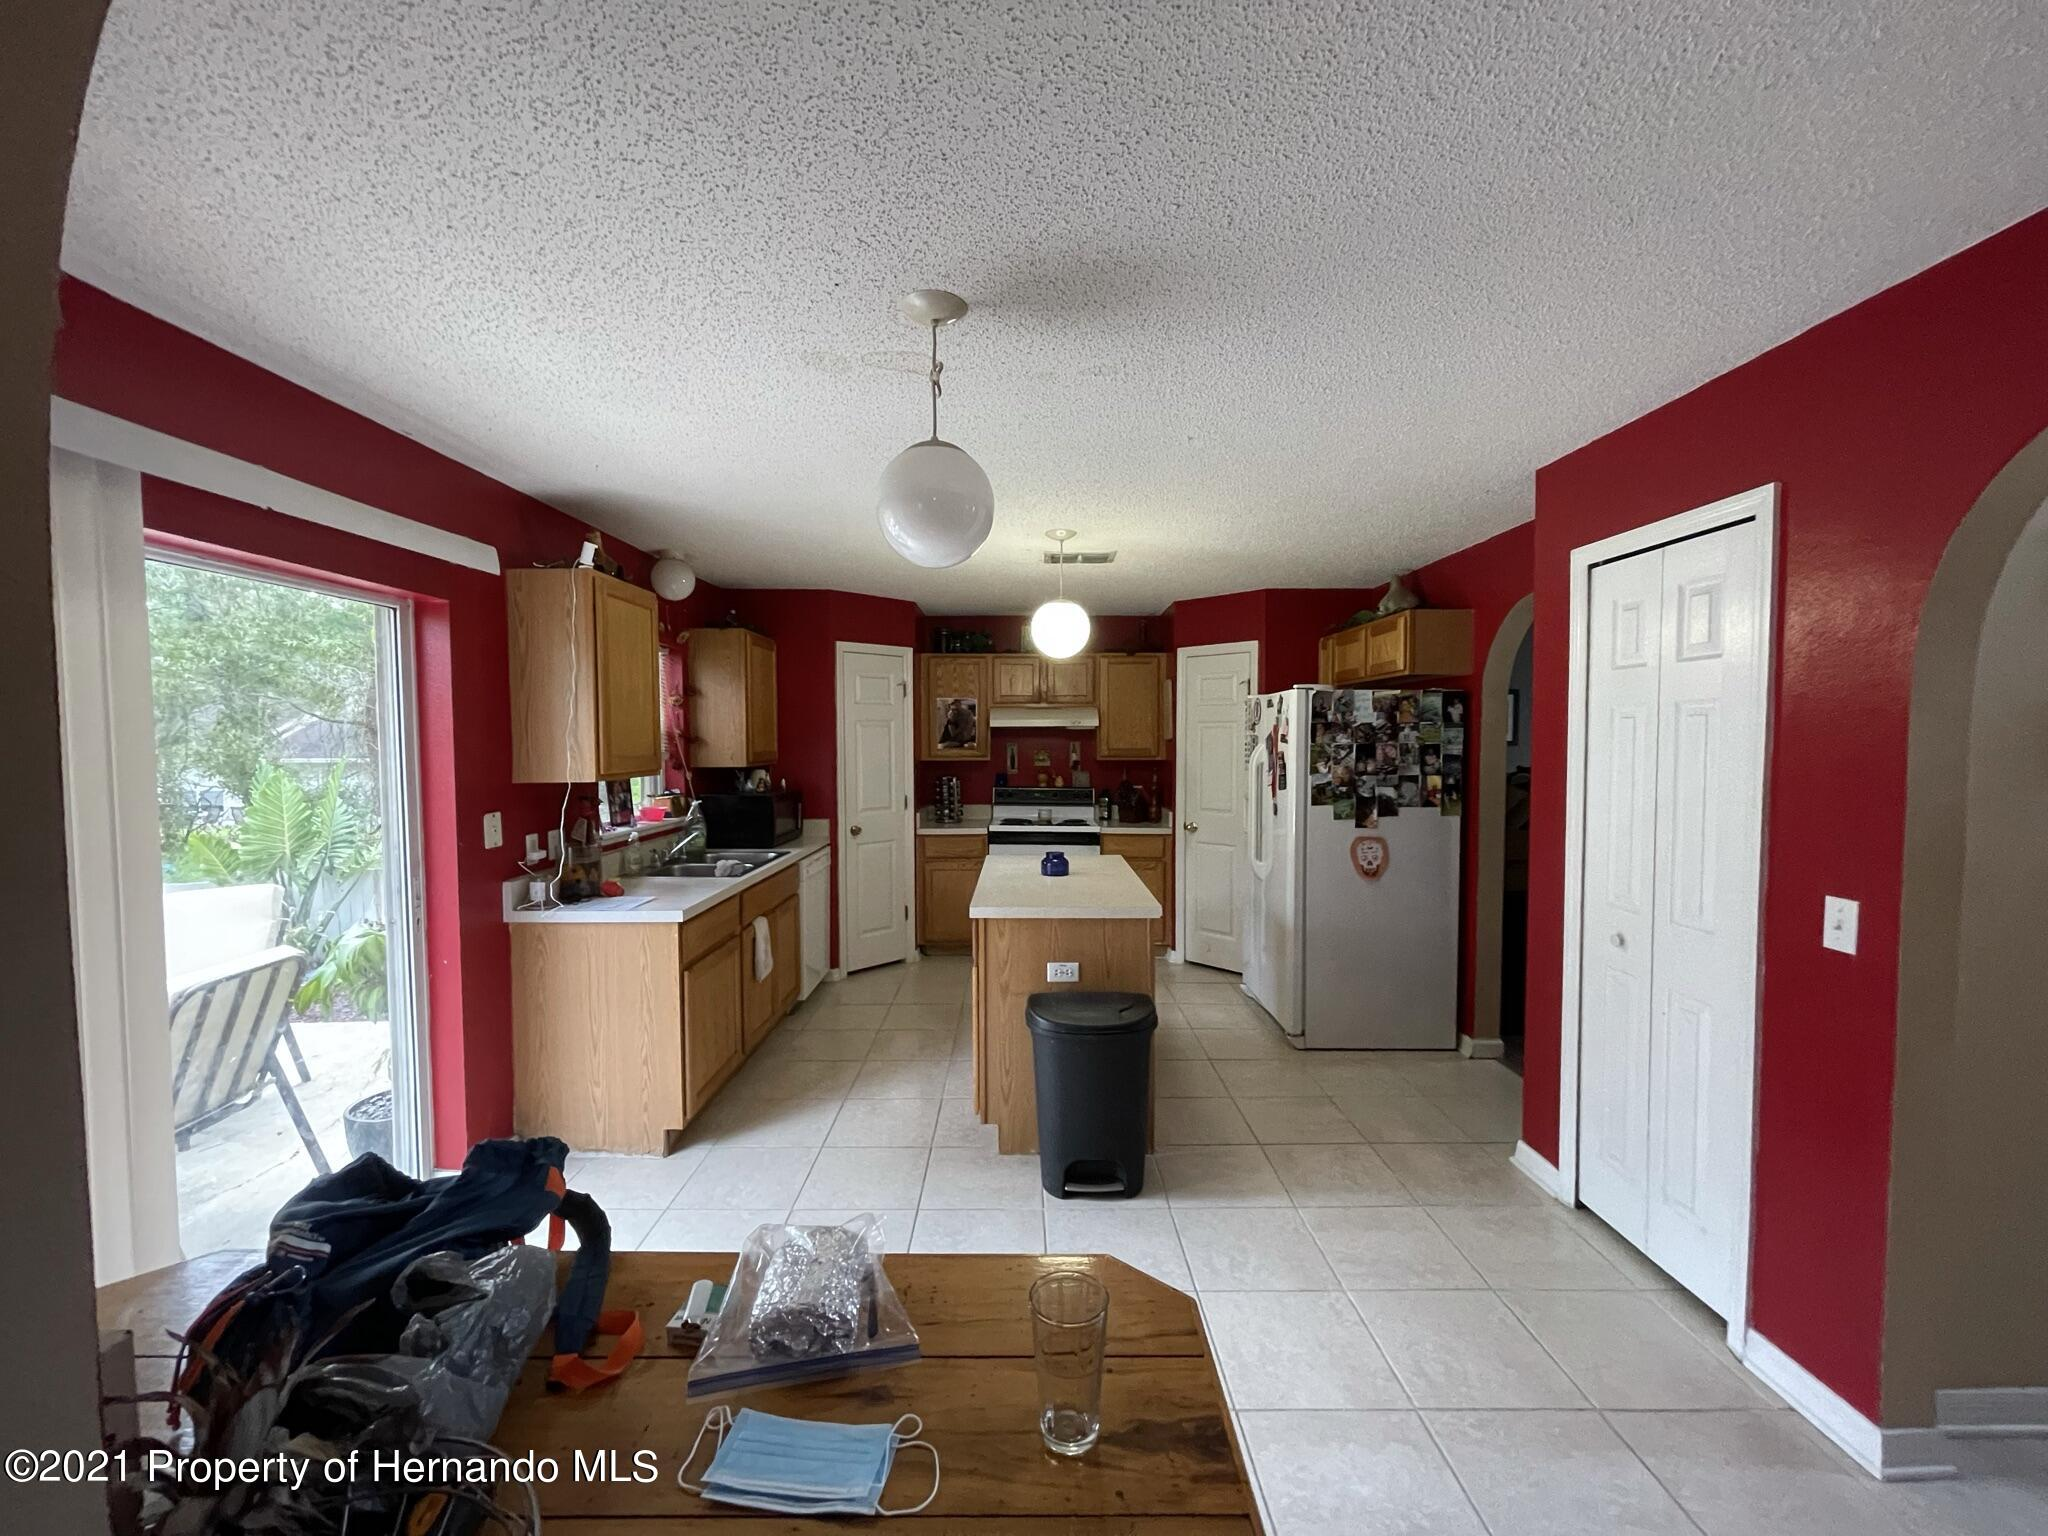 Image 5 of 22 For 12139 Villa Road